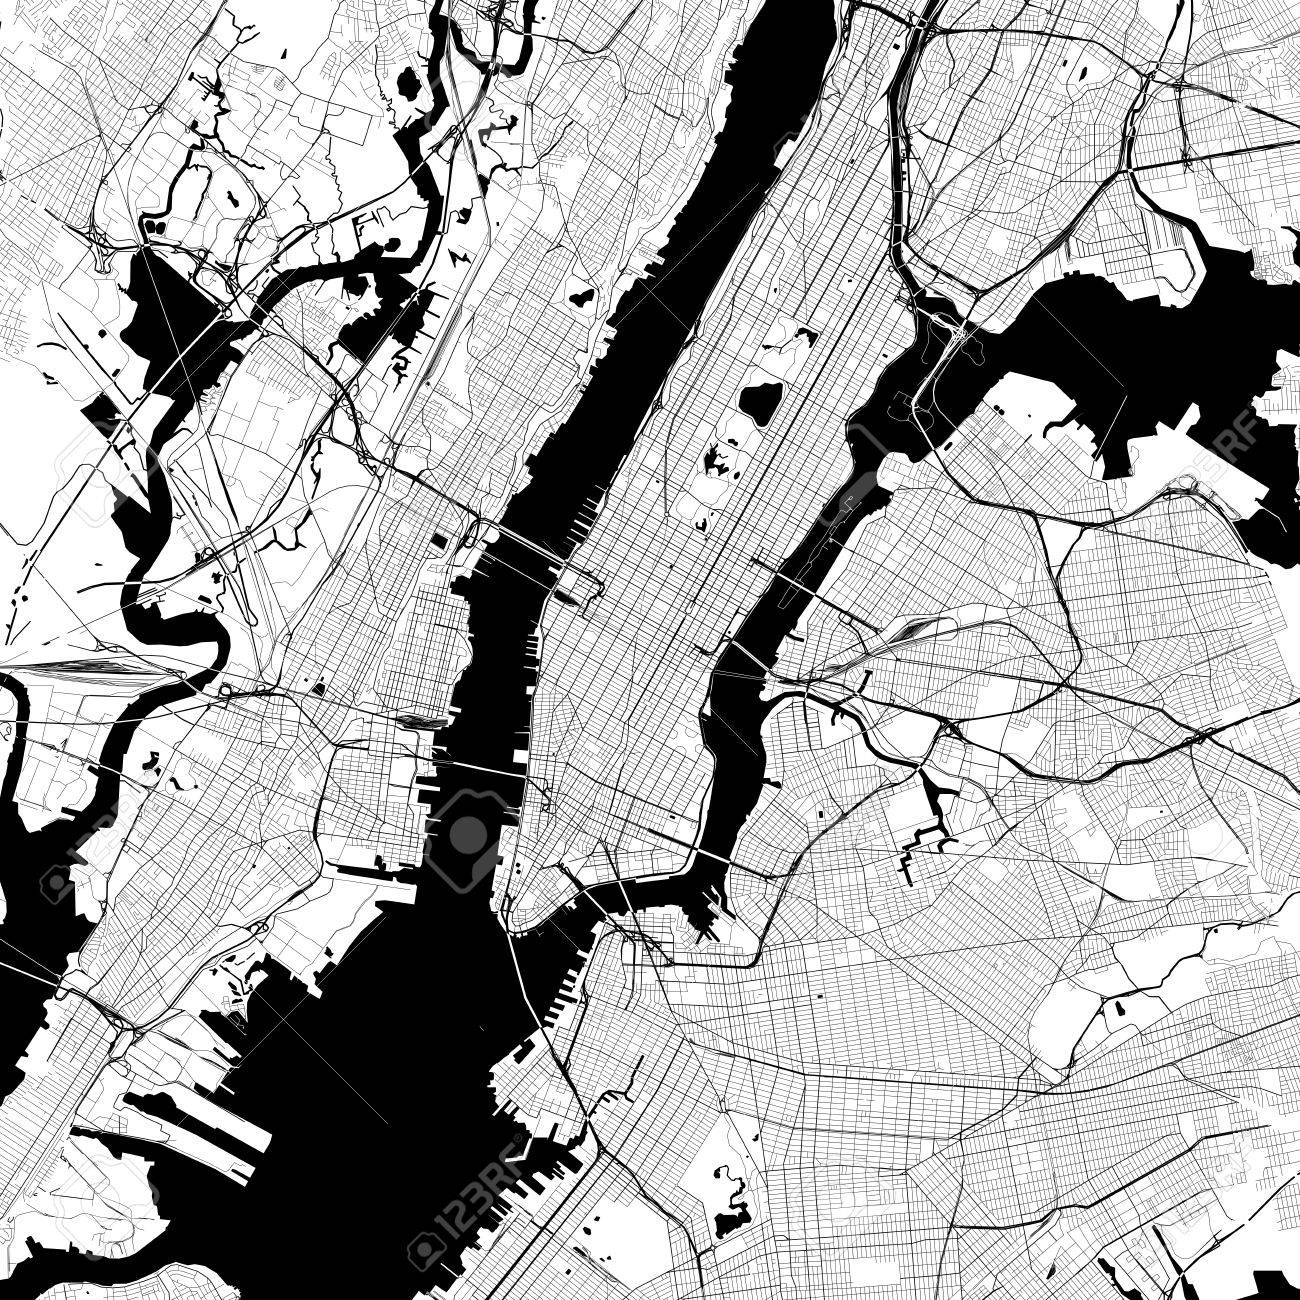 Free Map Of New York City.New York City Monochrome Vector Map Very Large And Detailed